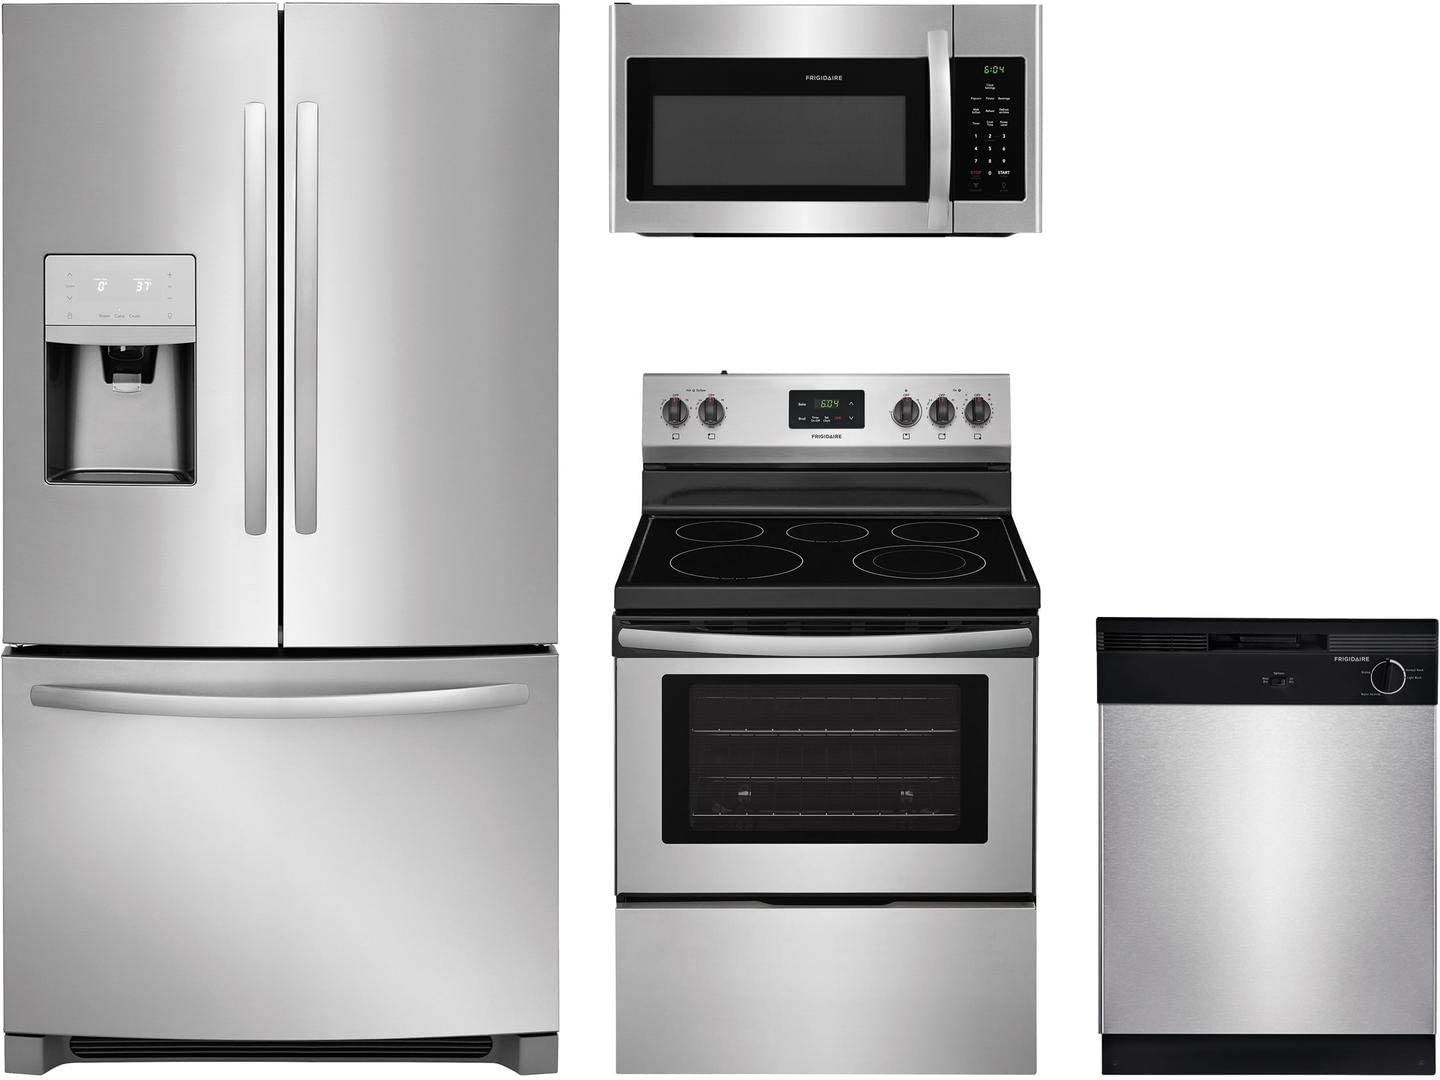 Frigidaire 988251 4 piece Kitchen Appliances Package in Stainless Steel